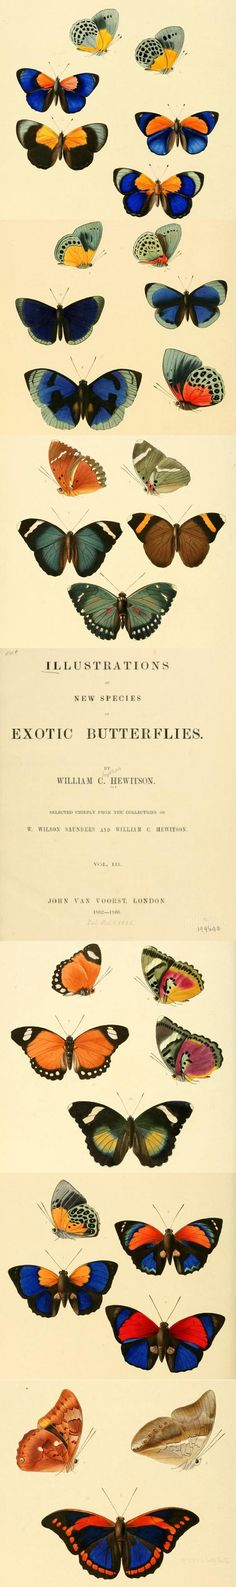 Click to read this butterfly book from 1856. These butterflies are great inspiration for woodworking, craft, art and many other DIY projects! Announcing: The world's Largest Collection of 16,000 Woodworking Plans! http://tedswoodworking-today.blogspot.com?prod=DenvZQ8G